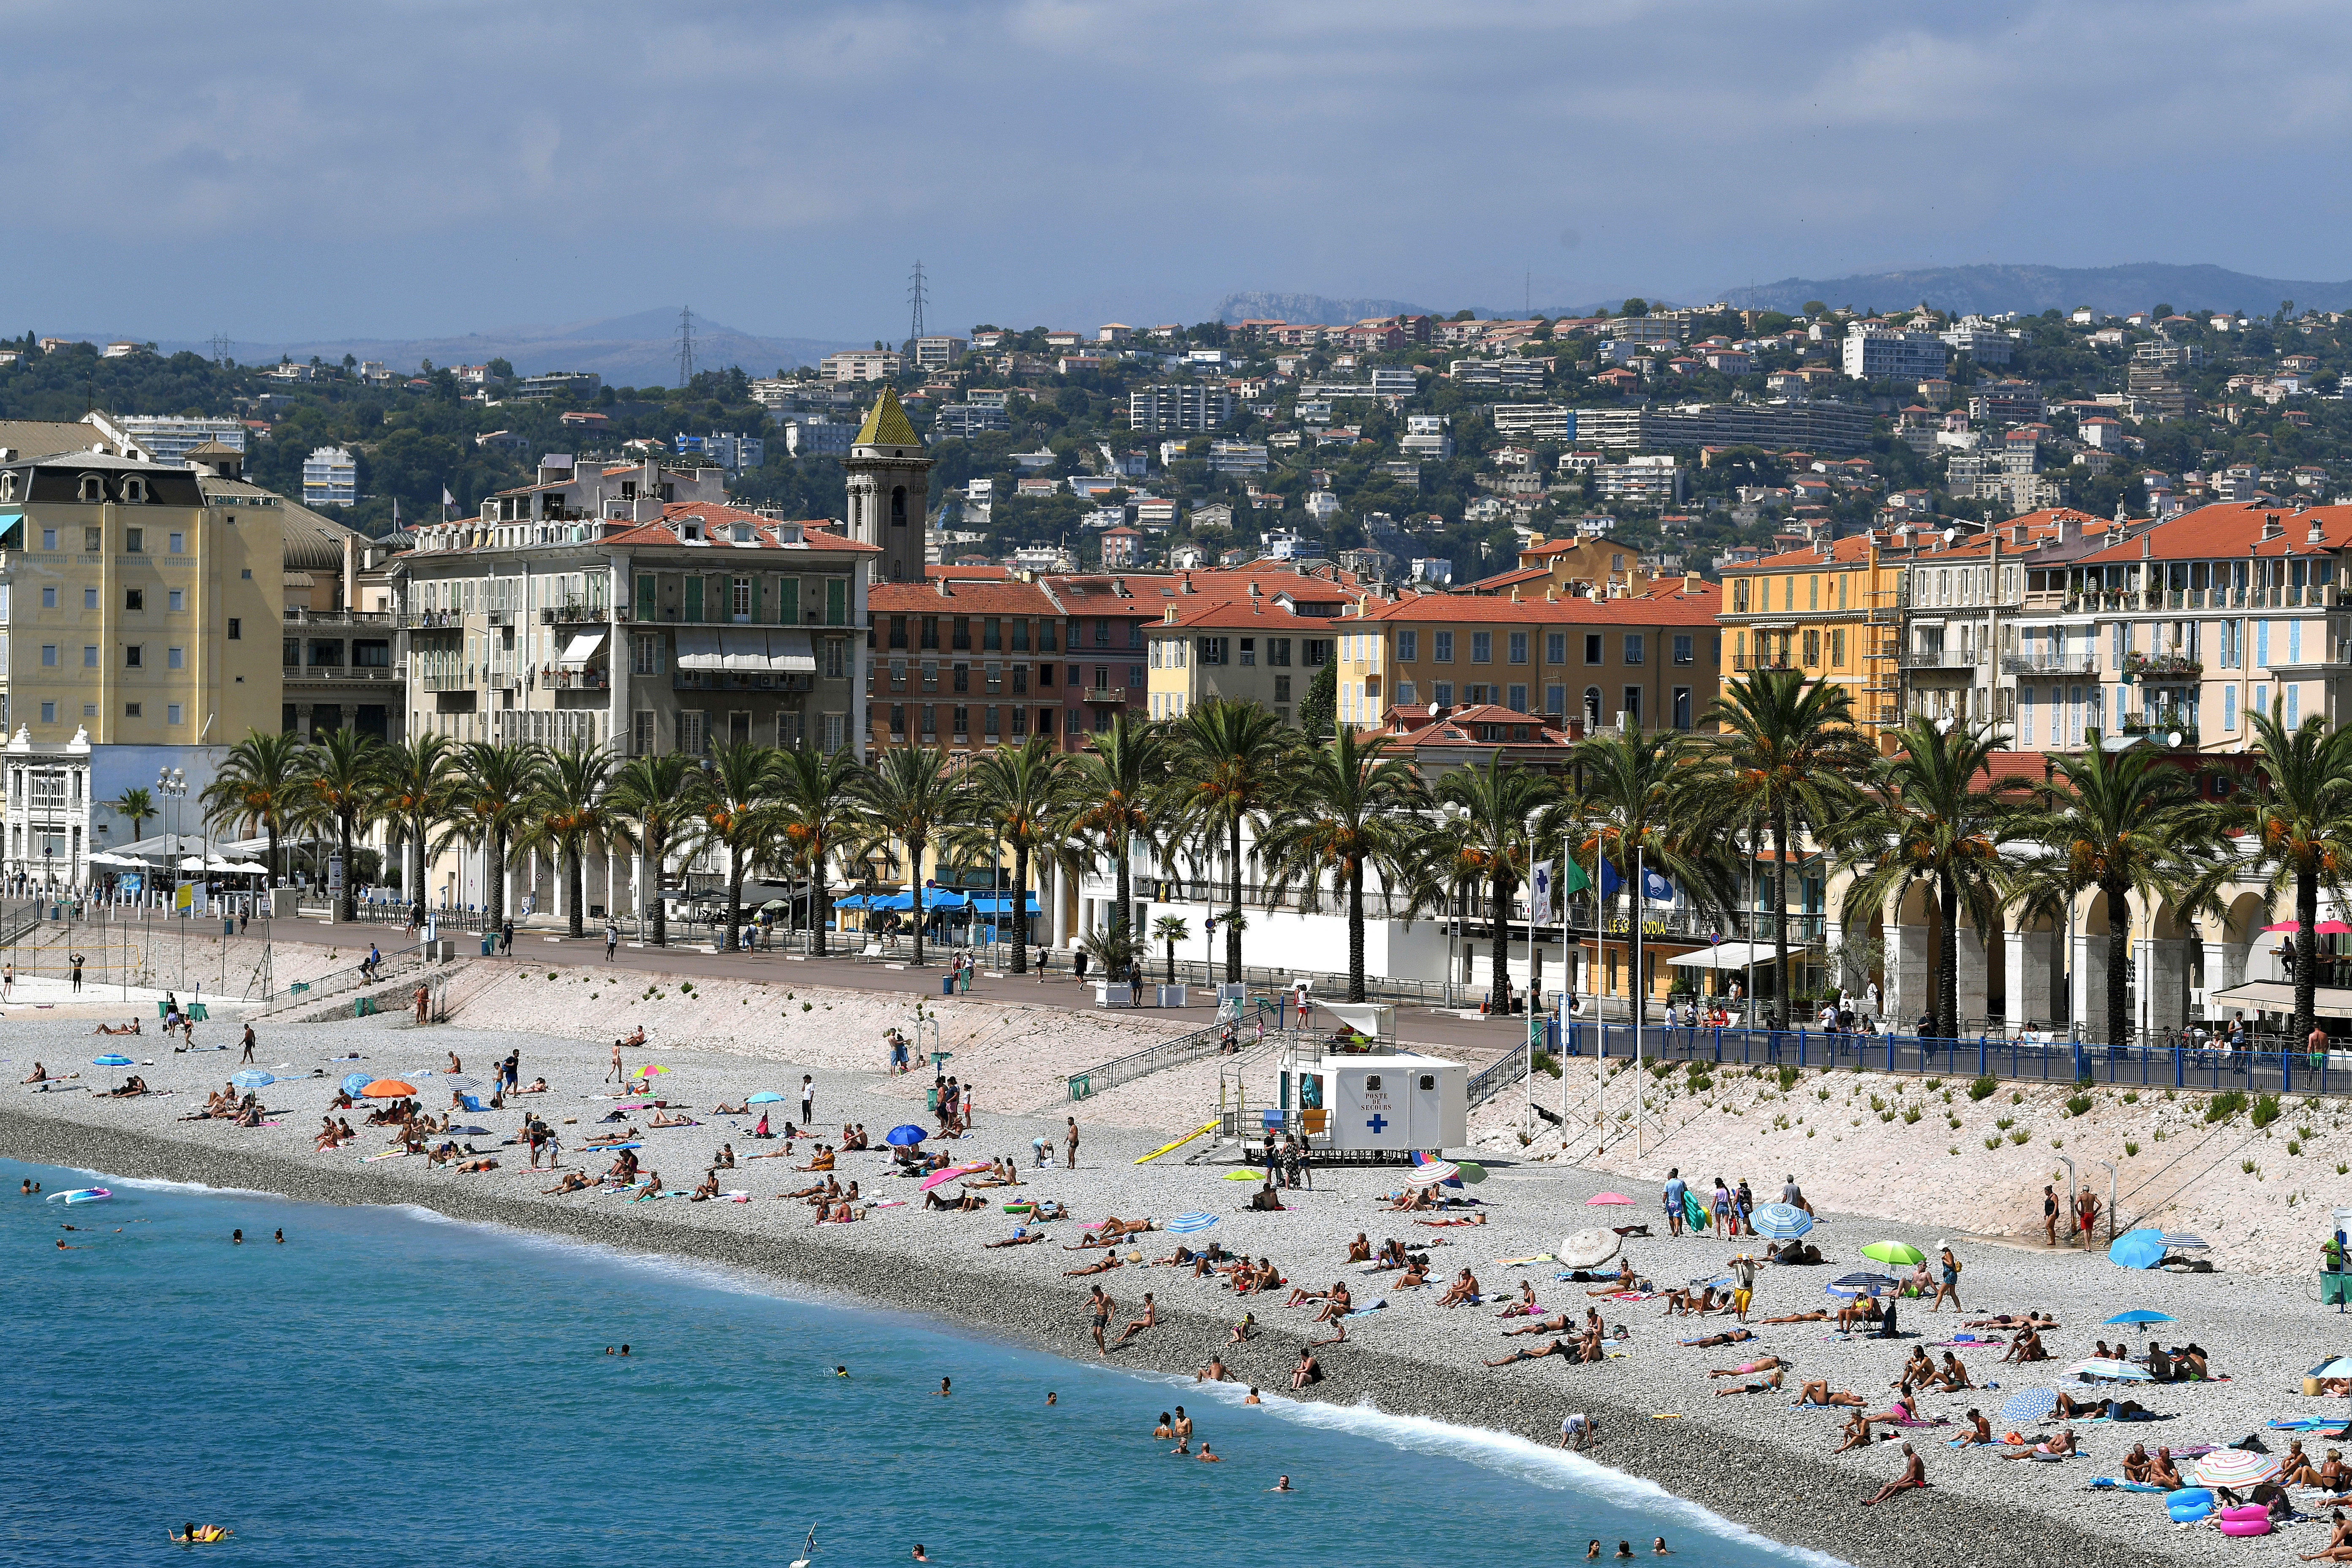 People visit a beach in Nice, France, on August 27.